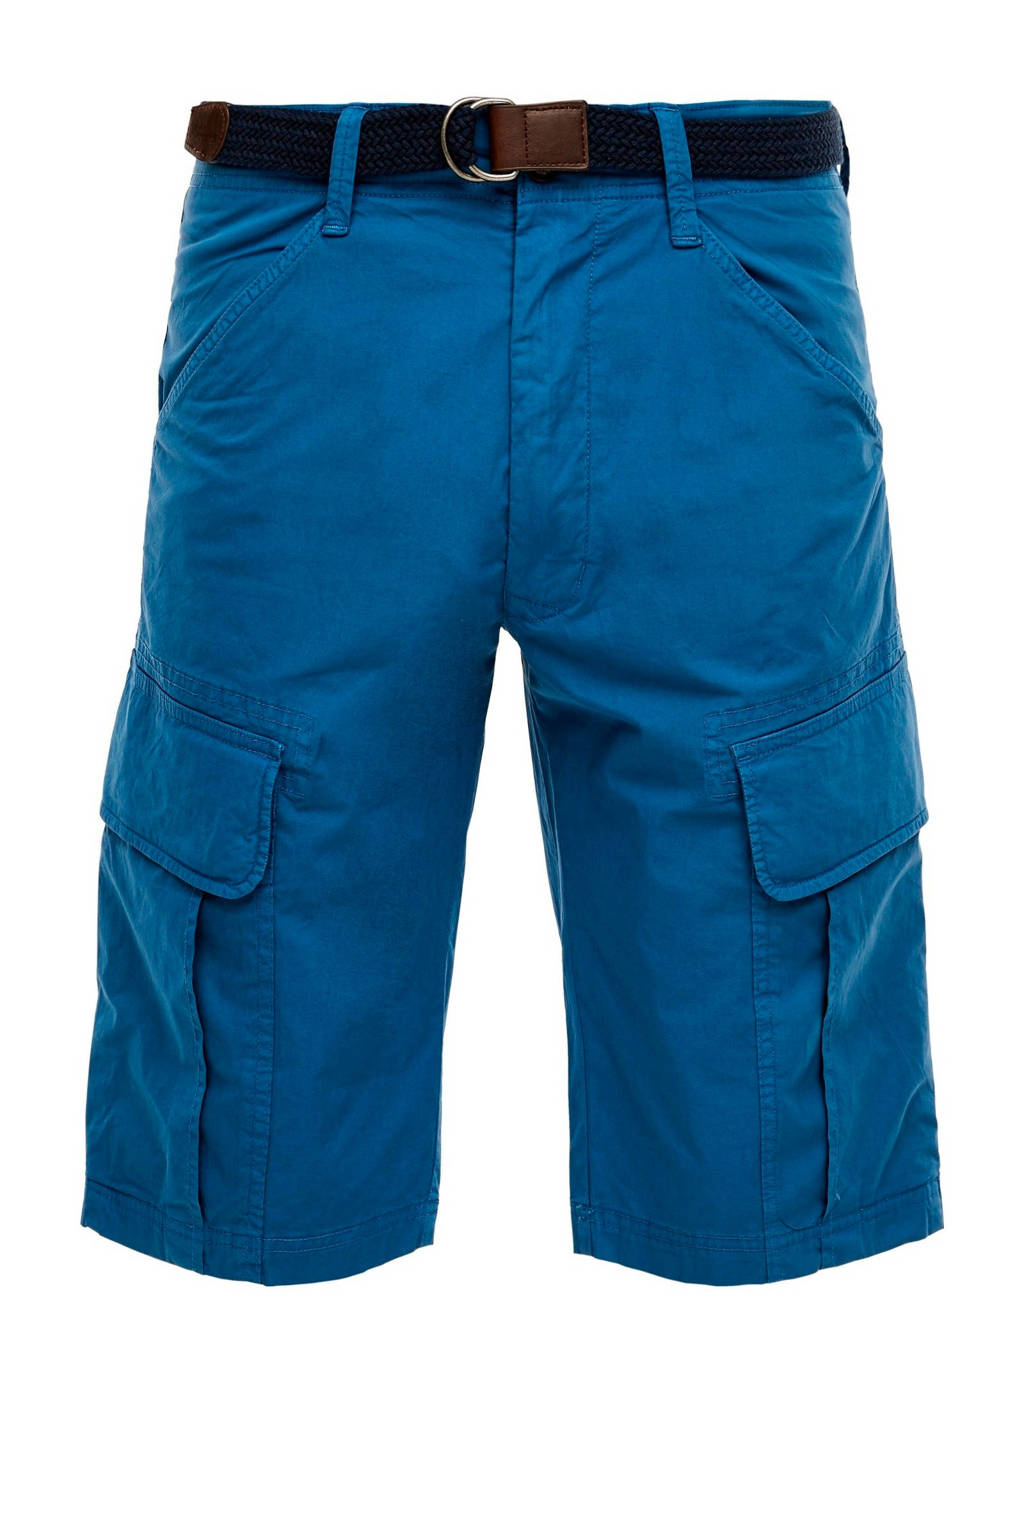 s.Oliver regular fit cargo bermuda, Blauw